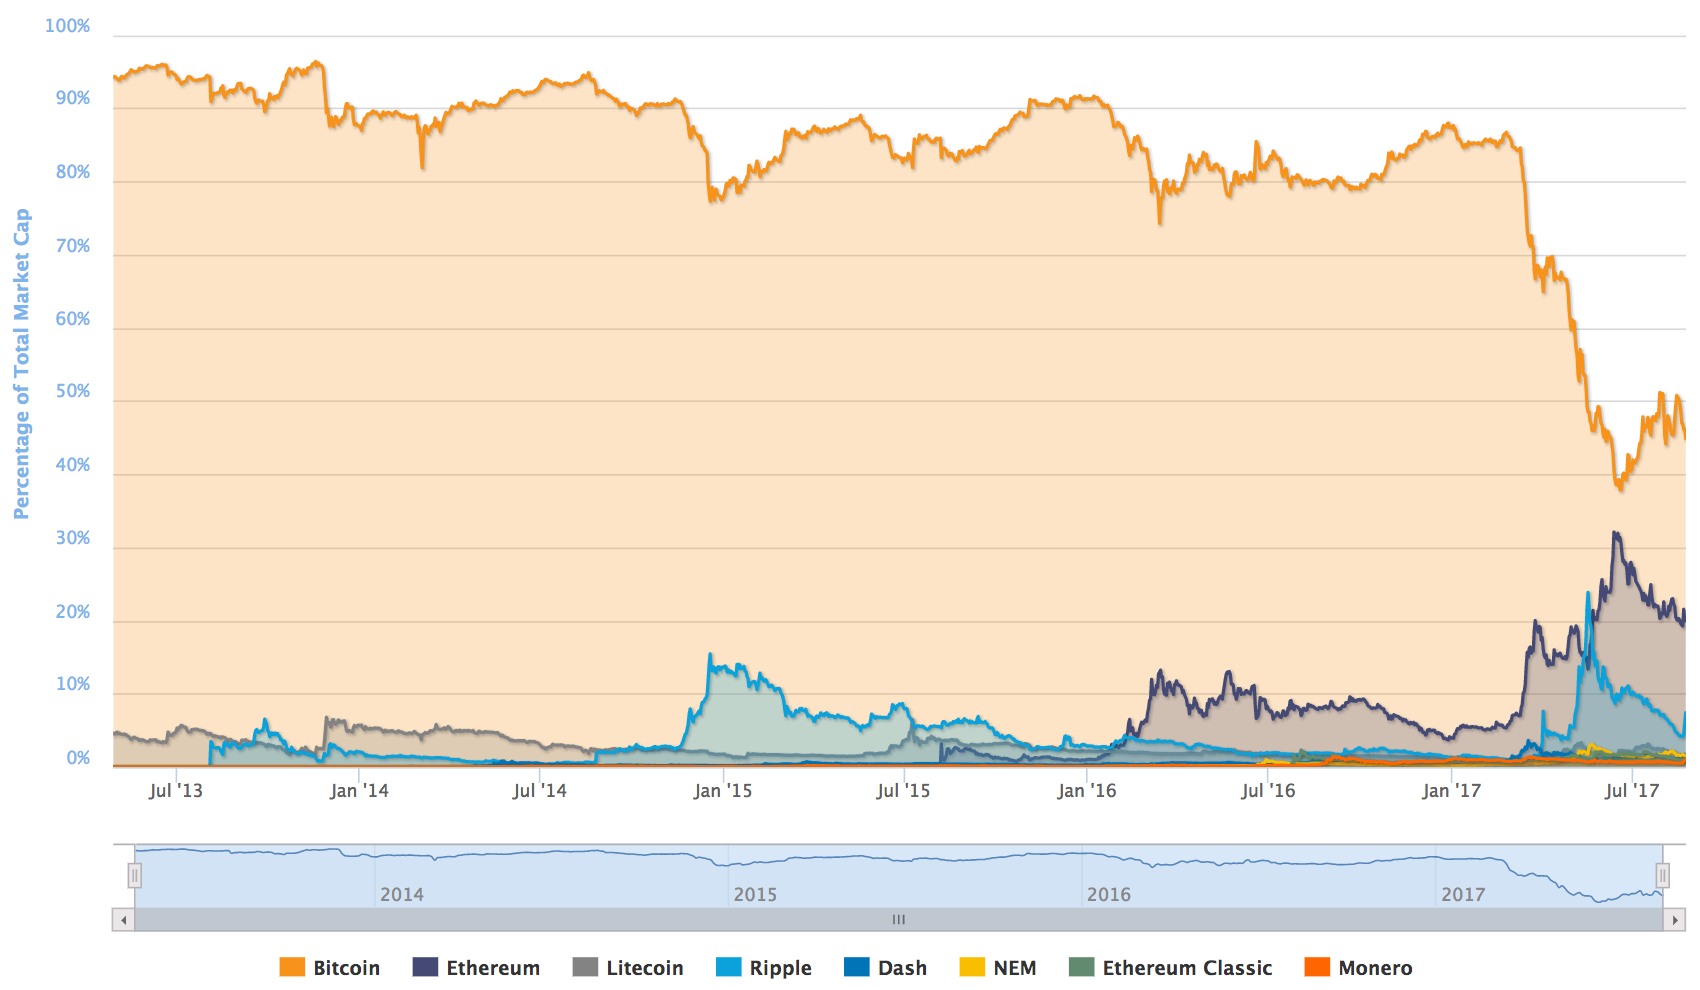 Projected market cap of cryptocurrency